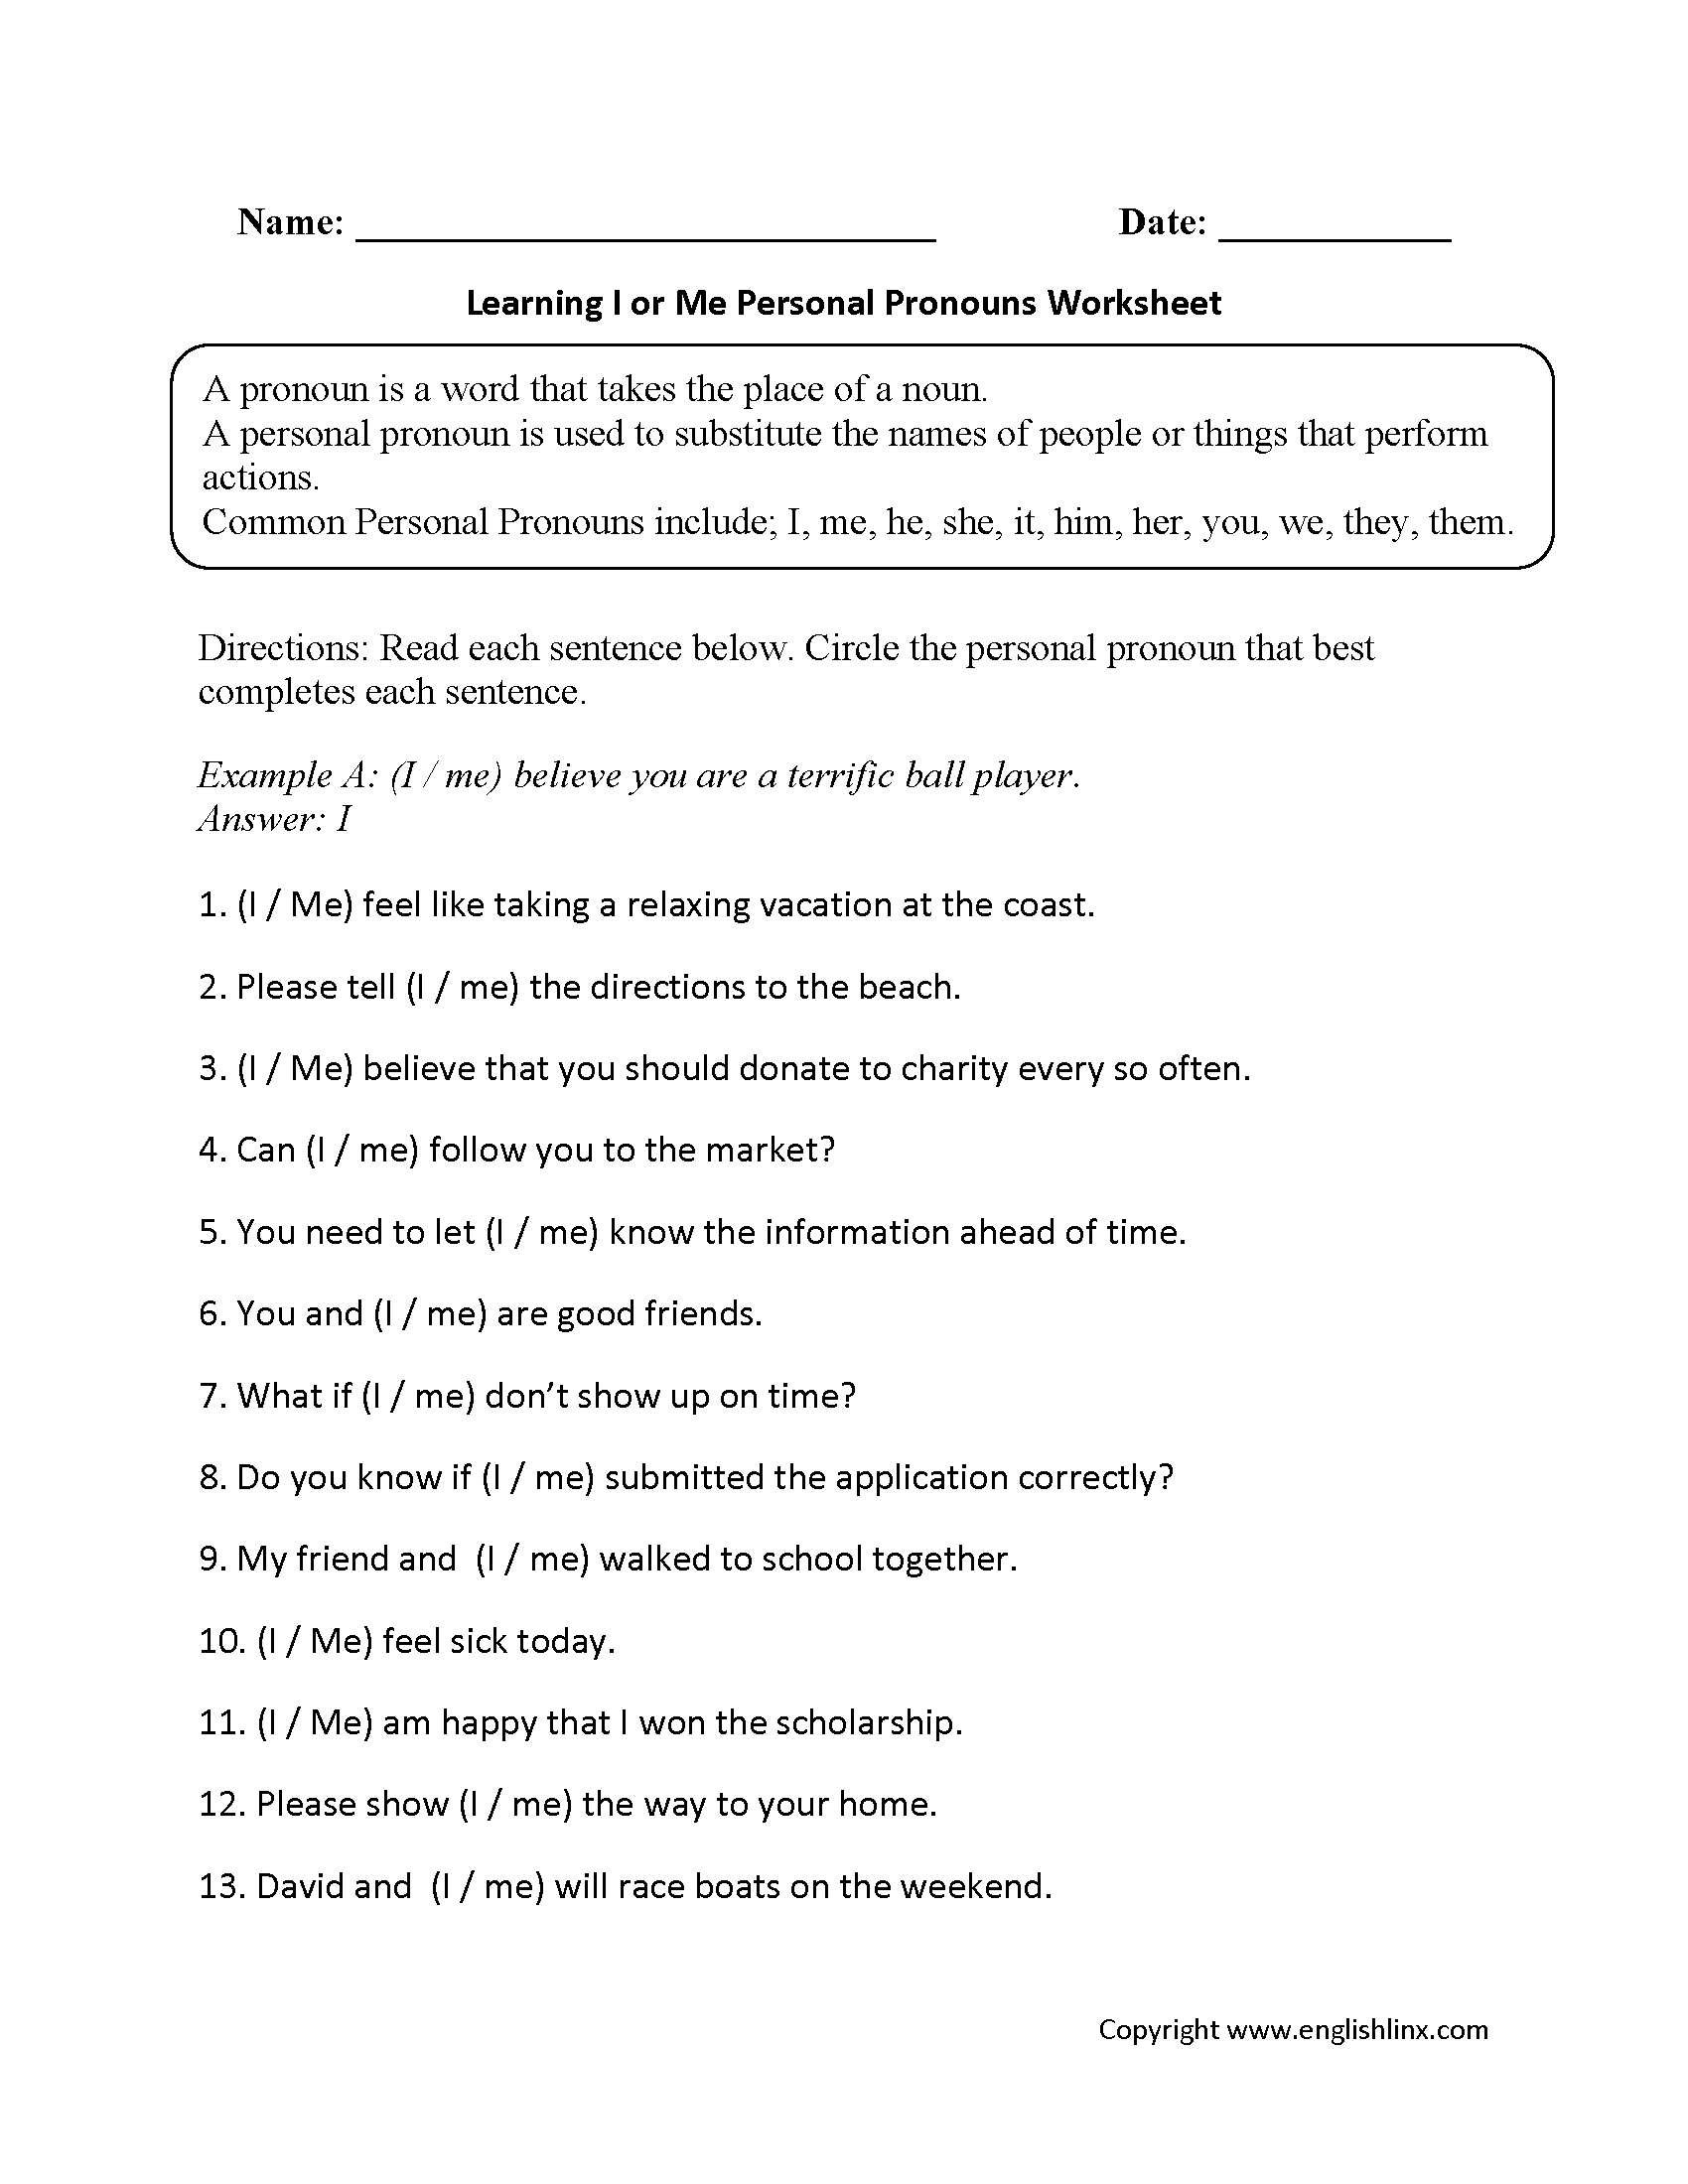 worksheet Pronoun Practice Worksheets learning i or me personal pronouns worksheets pinterest worksheets